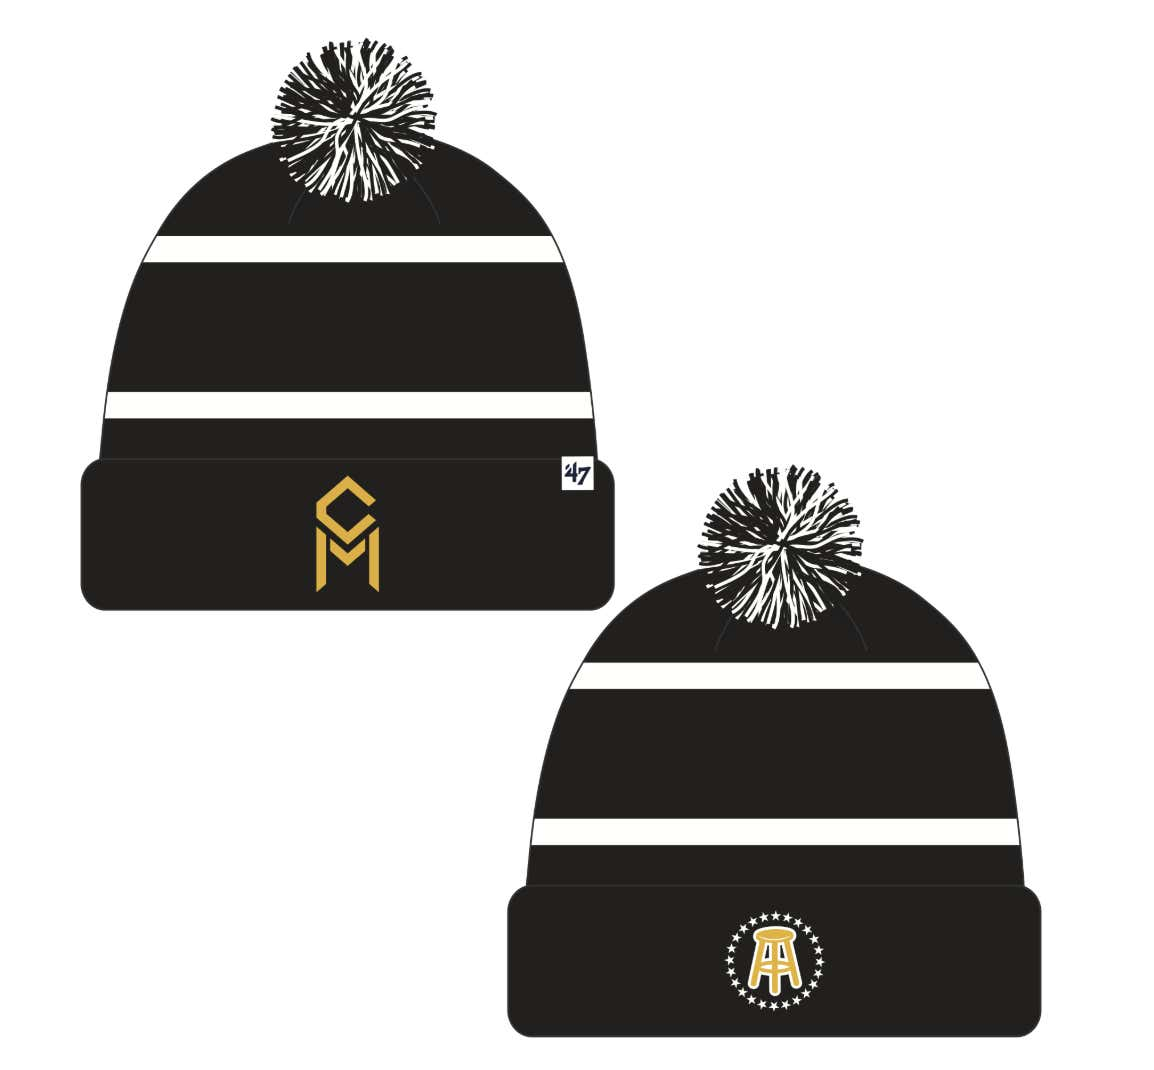 874c9458916 Season 2 Of Charlie McAvoy s Merch Line On Sale Now - Barstool Sports